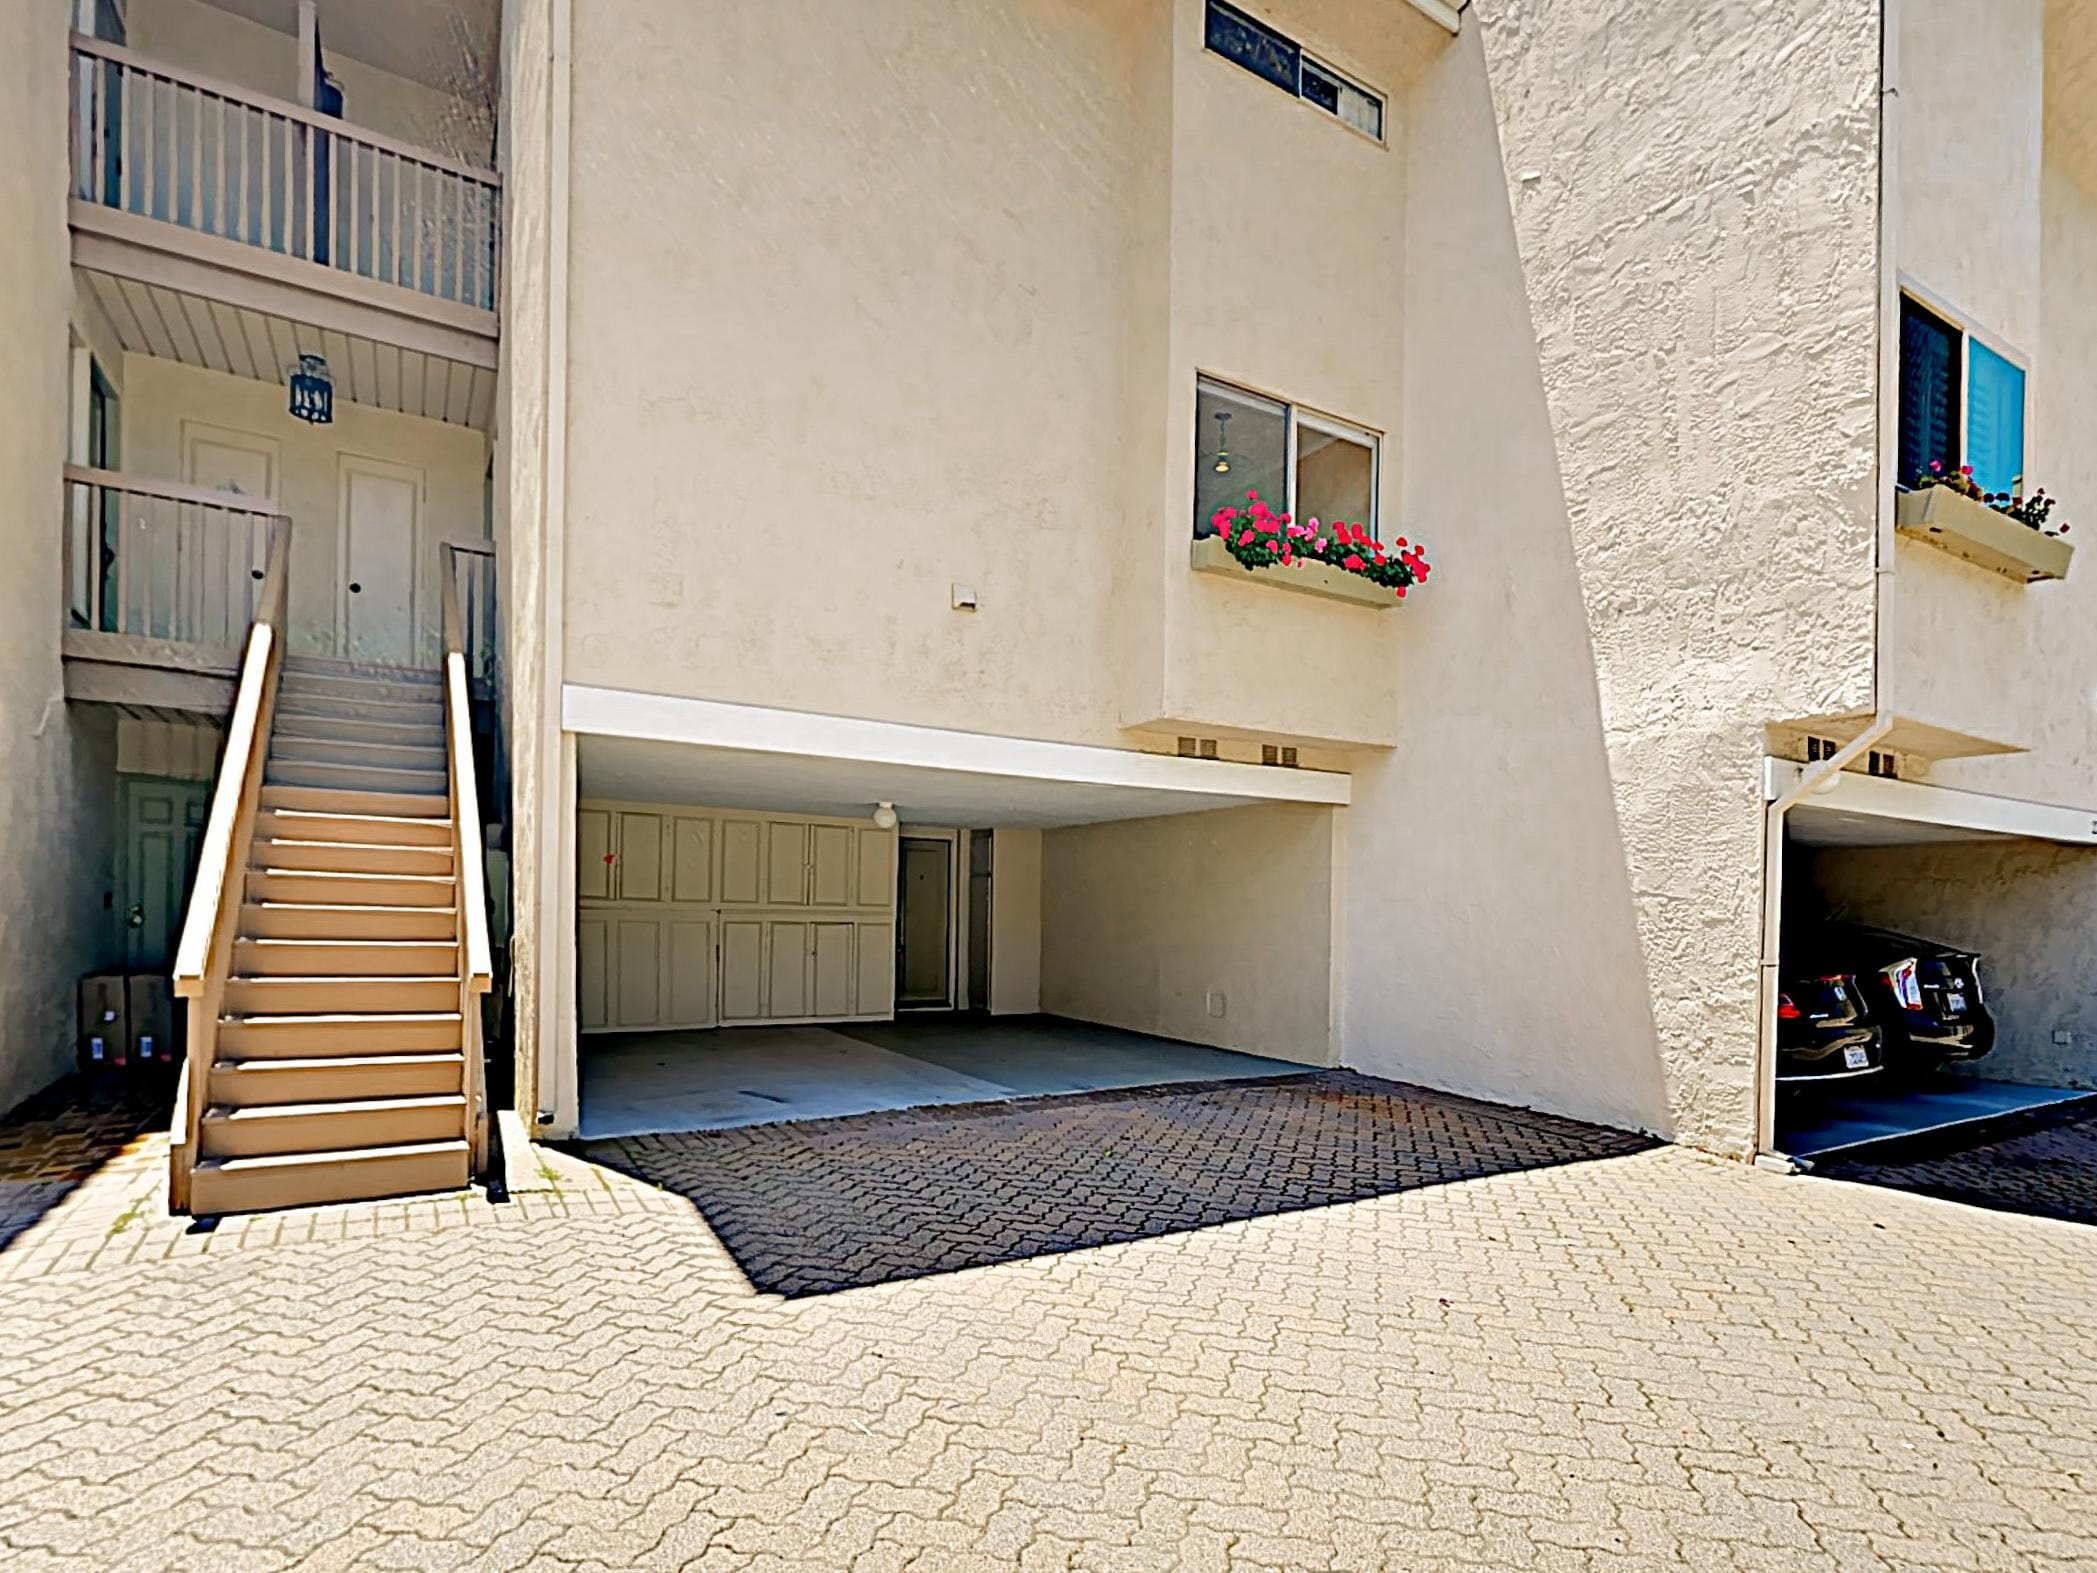 This apartment includes private parking under a carport.